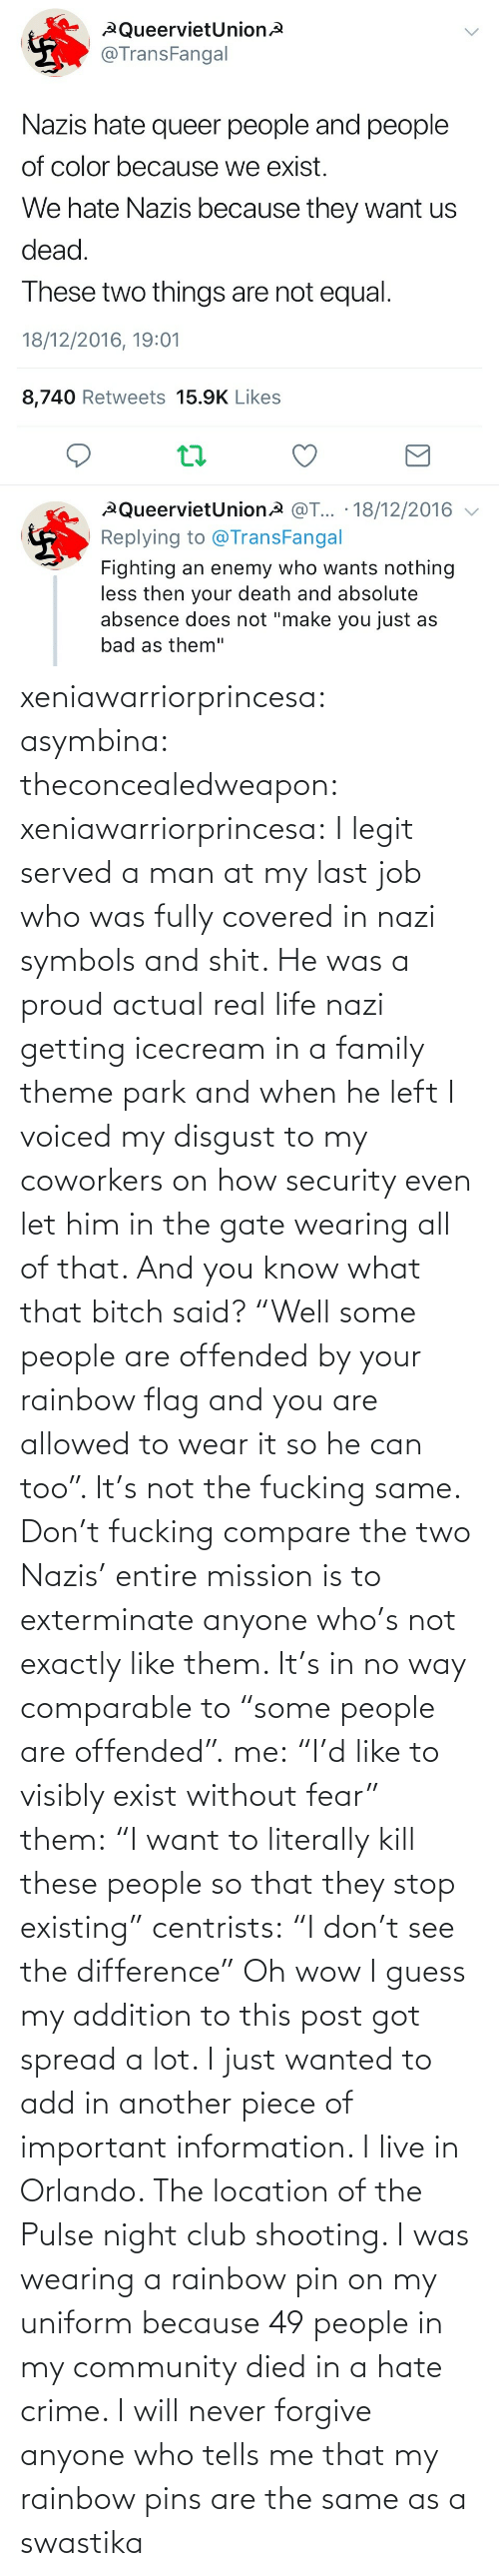 "And You Are: xeniawarriorprincesa:  asymbina:  theconcealedweapon:  xeniawarriorprincesa:  I legit served a man at my last job who was fully covered in nazi symbols and shit. He was a proud actual real life nazi getting icecream in a family theme park and when he left I voiced my disgust to my coworkers on how security even let him in the gate wearing all of that. And you know what that bitch said? ""Well some people are offended by your rainbow flag and you are allowed to wear it so he can too"". It's not the fucking same. Don't fucking compare the two  Nazis' entire mission is to exterminate anyone who's not exactly like them. It's in no way comparable to ""some people are offended"".  me: ""I'd like to visibly exist without fear"" them: ""I want to literally kill these people so that they stop existing"" centrists: ""I don't see the difference""   Oh wow I guess my addition to this post got spread a lot. I just wanted to add in another piece of important information. I live in Orlando. The location of the Pulse night club shooting. I was wearing a rainbow pin on my uniform because 49 people in my community died in a hate crime. I will never forgive anyone who tells me that my rainbow pins are the same as a swastika"